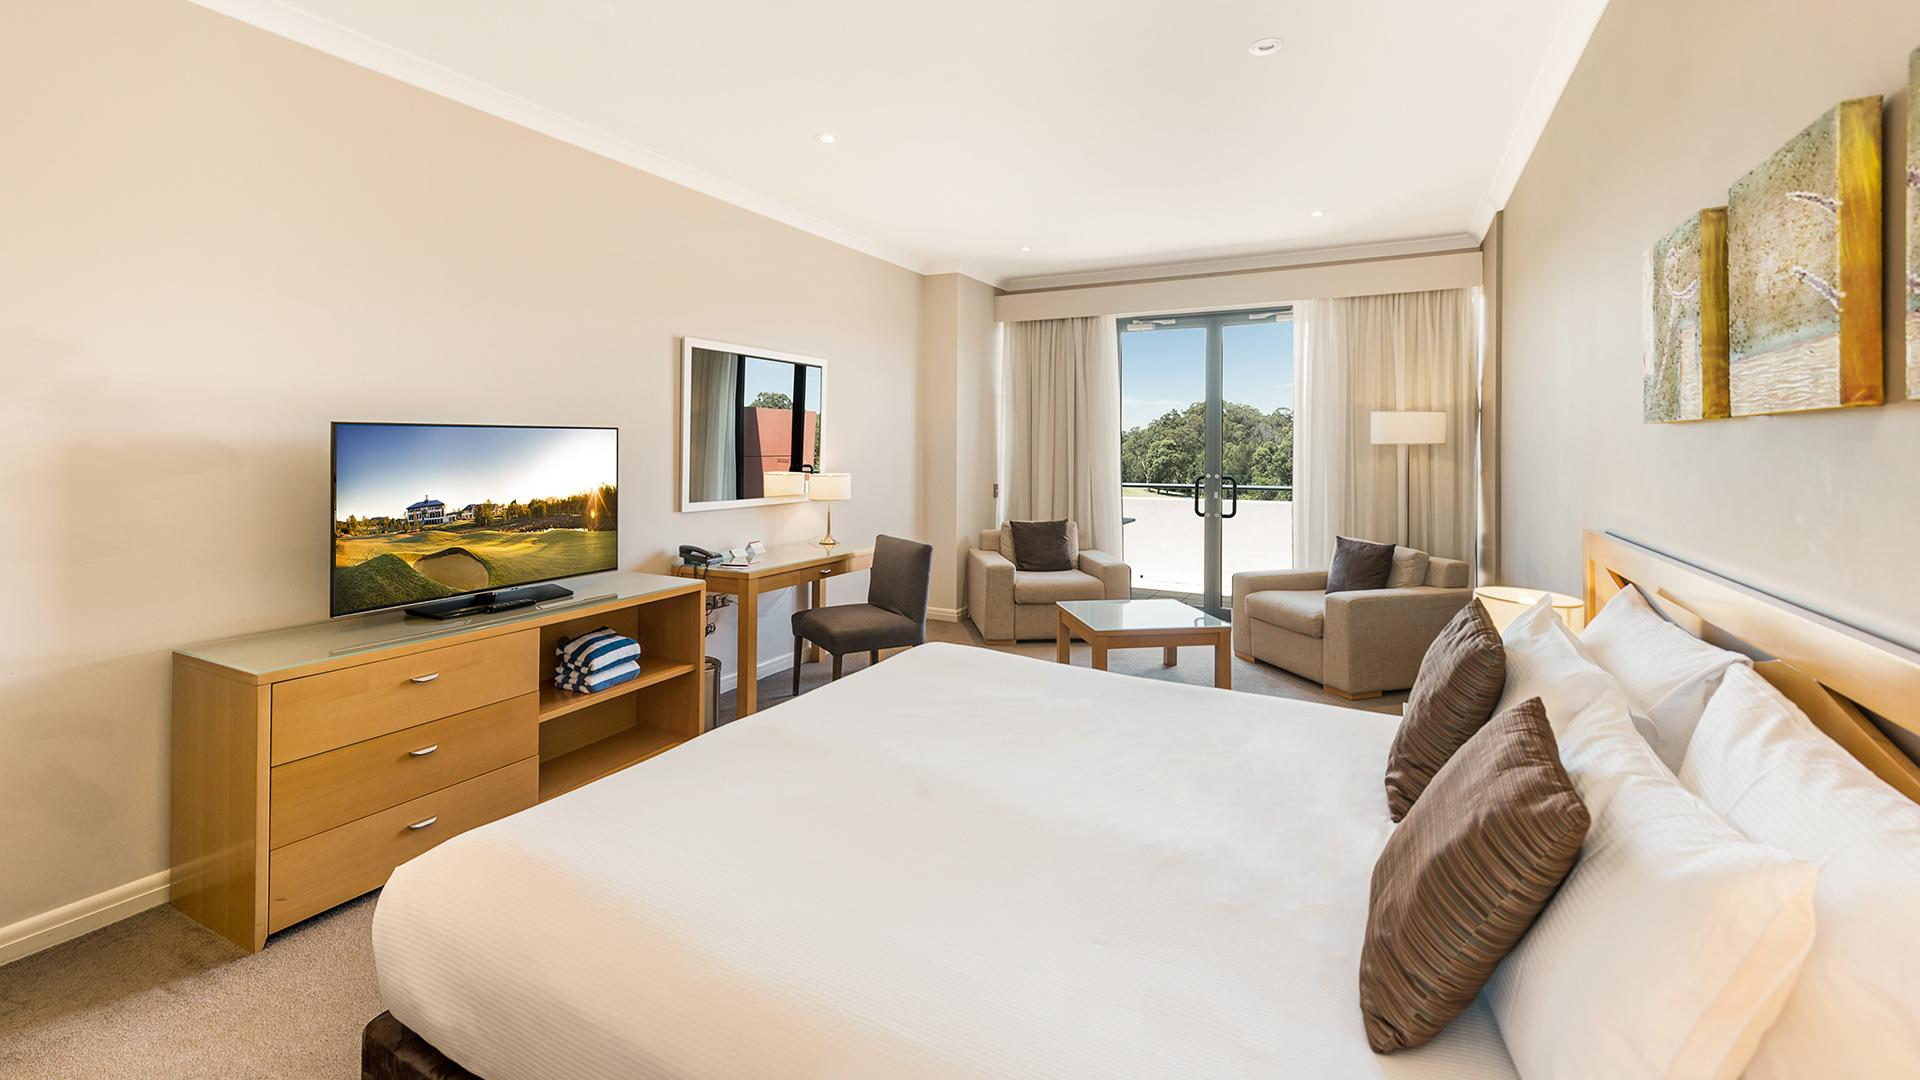 Golf View Standard King Room image 1 at Mercure Kooindah Waters Central Coast by Wyong Shire Council, New South Wales, Australia